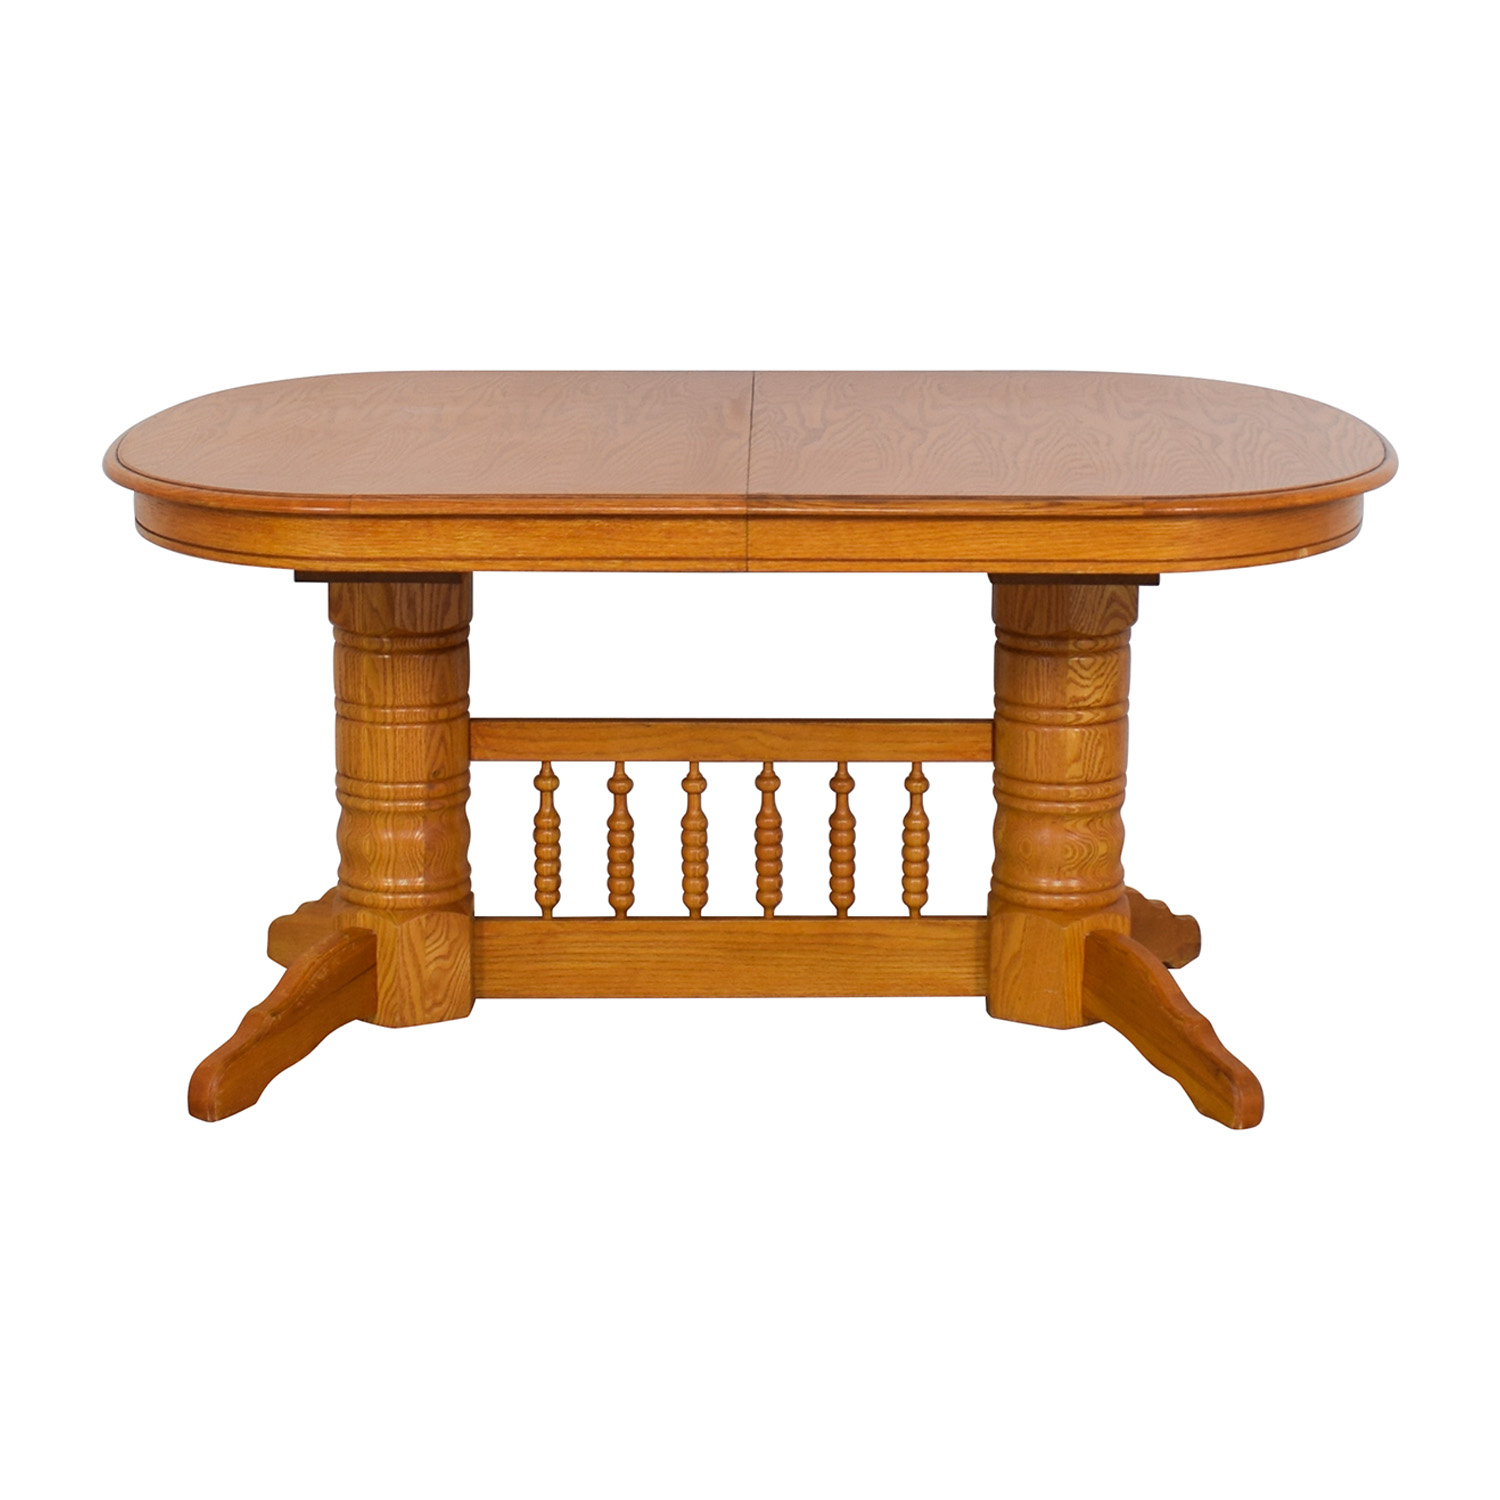 buy Greenbaum Interiors Extended Dining Table Greenbaum Interiors Tables